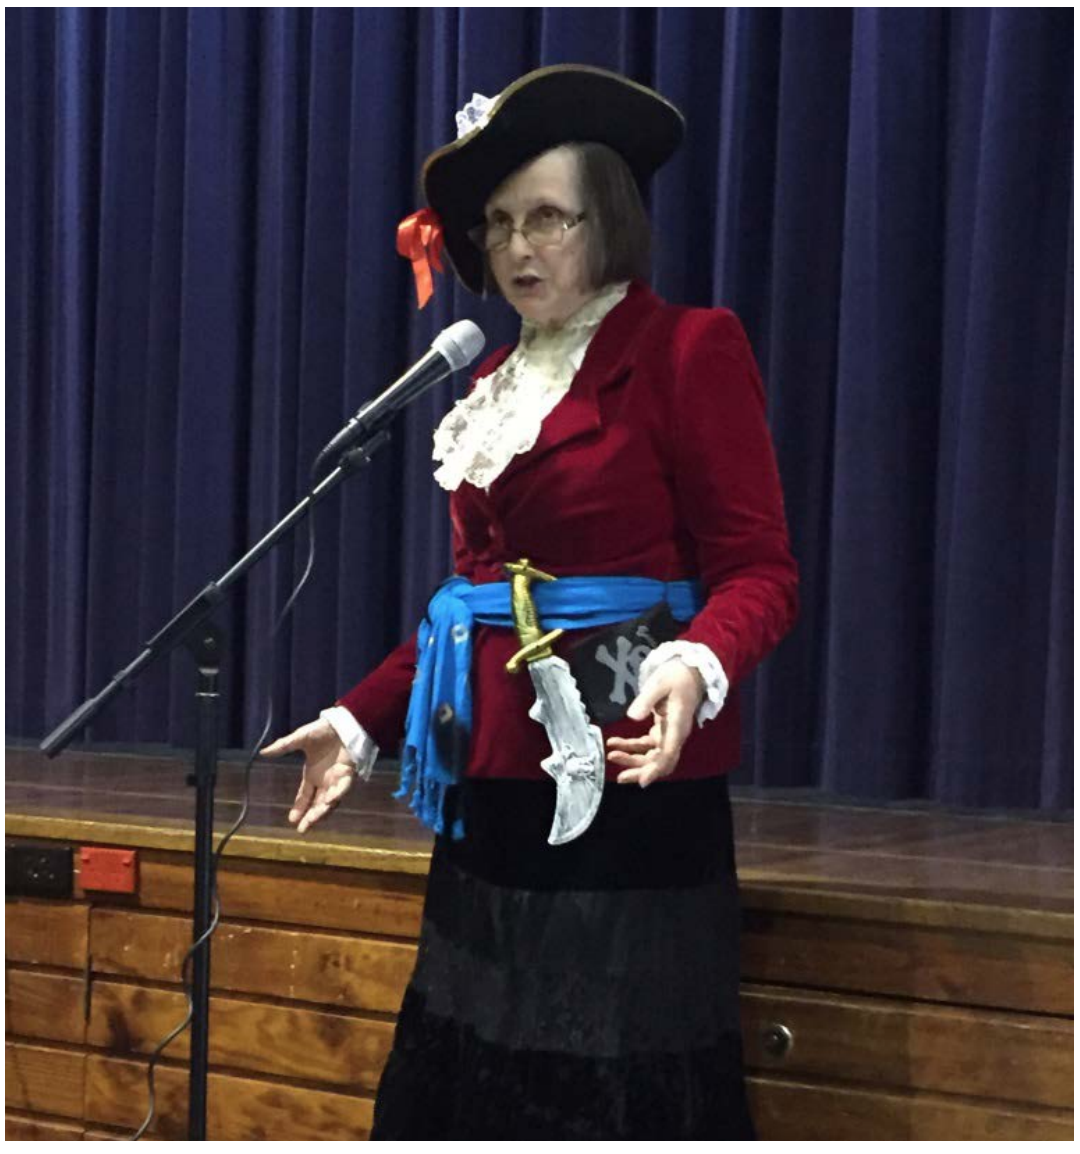 image of librarian dressed as pirate at the book parade.